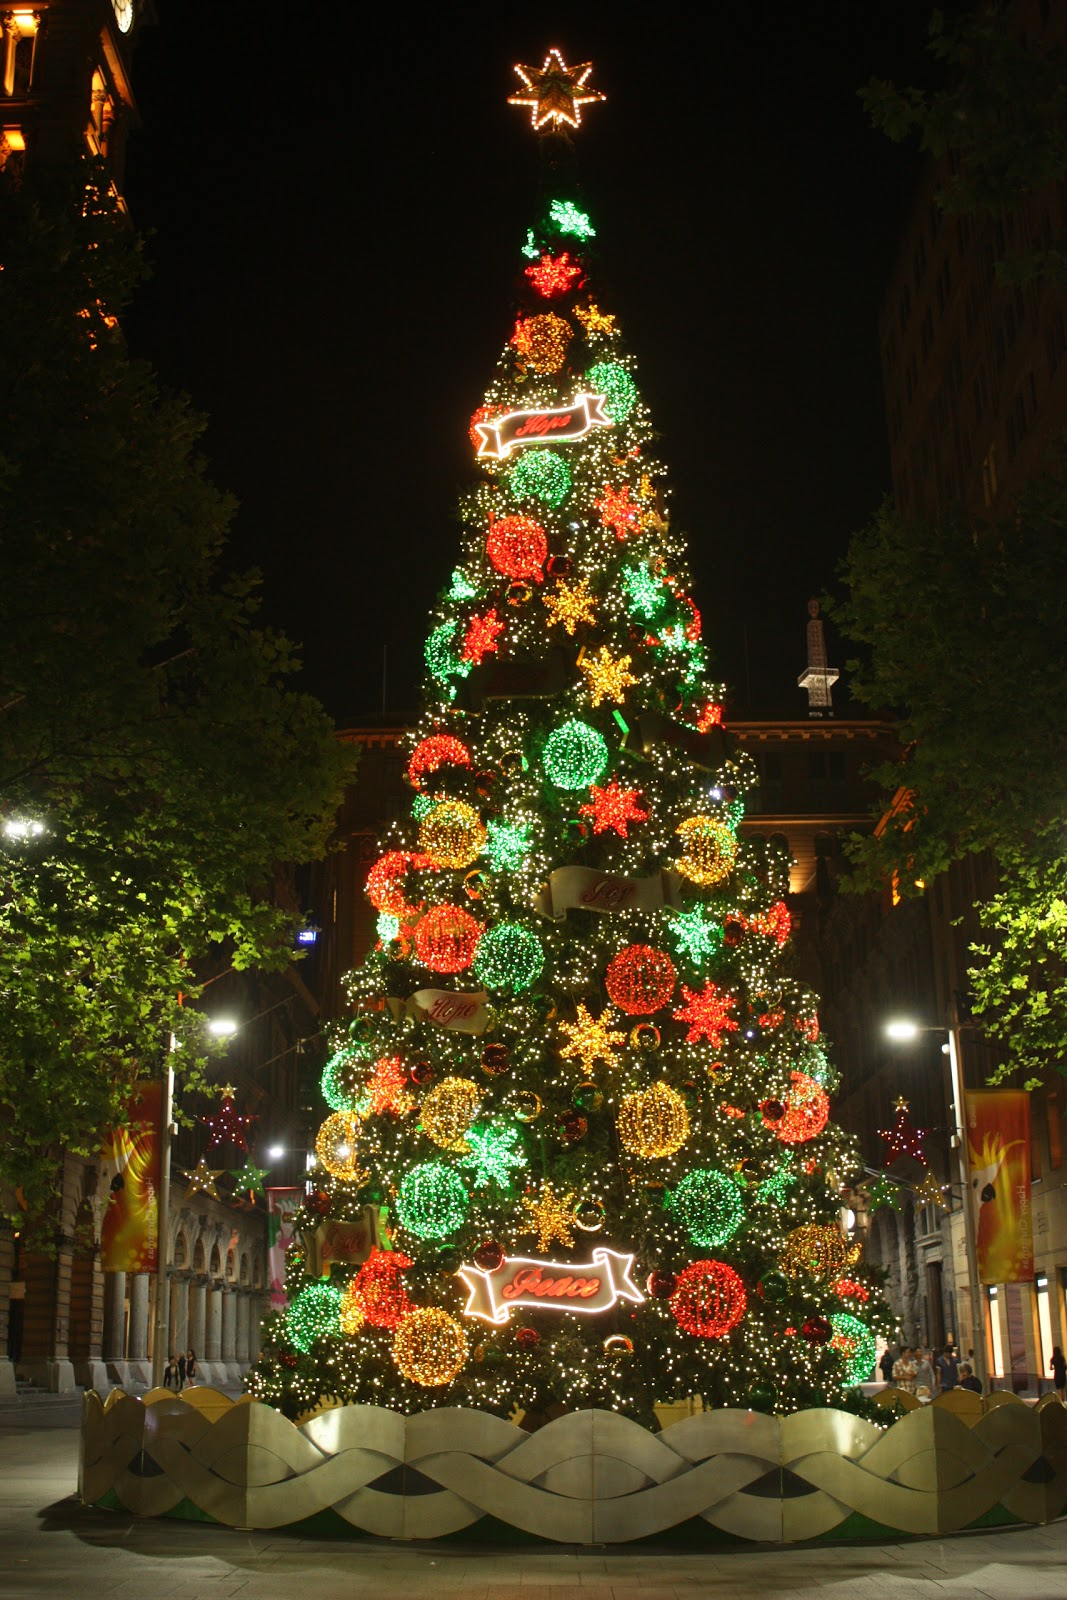 Christmas Decorations Sydney Sydney City And Suburbs Martin Place Christmas Tree